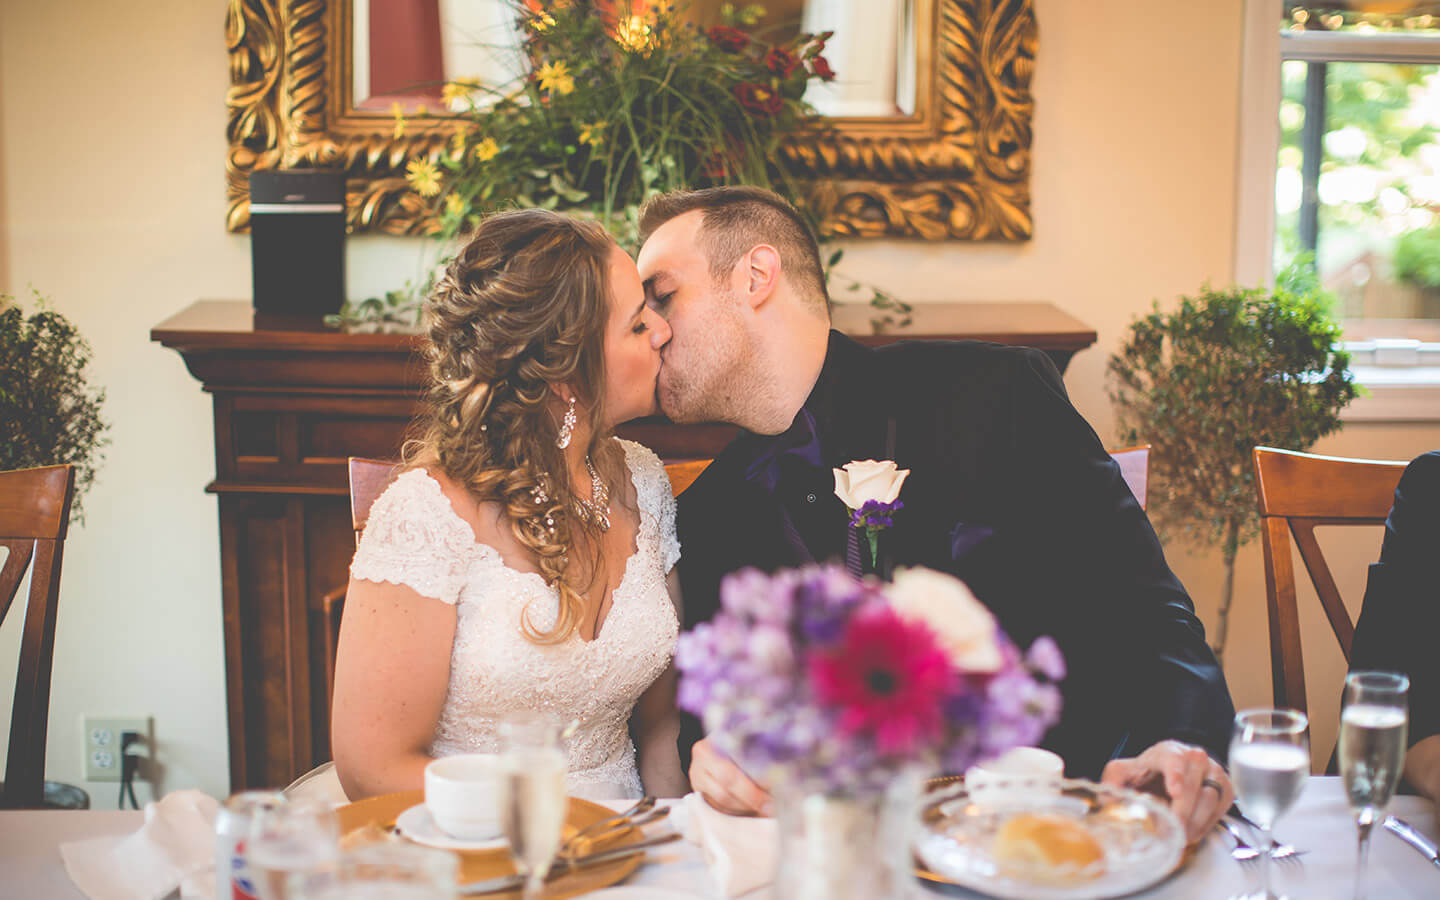 Destination wedding in Michigan, Bride and groom kissing at their reception table